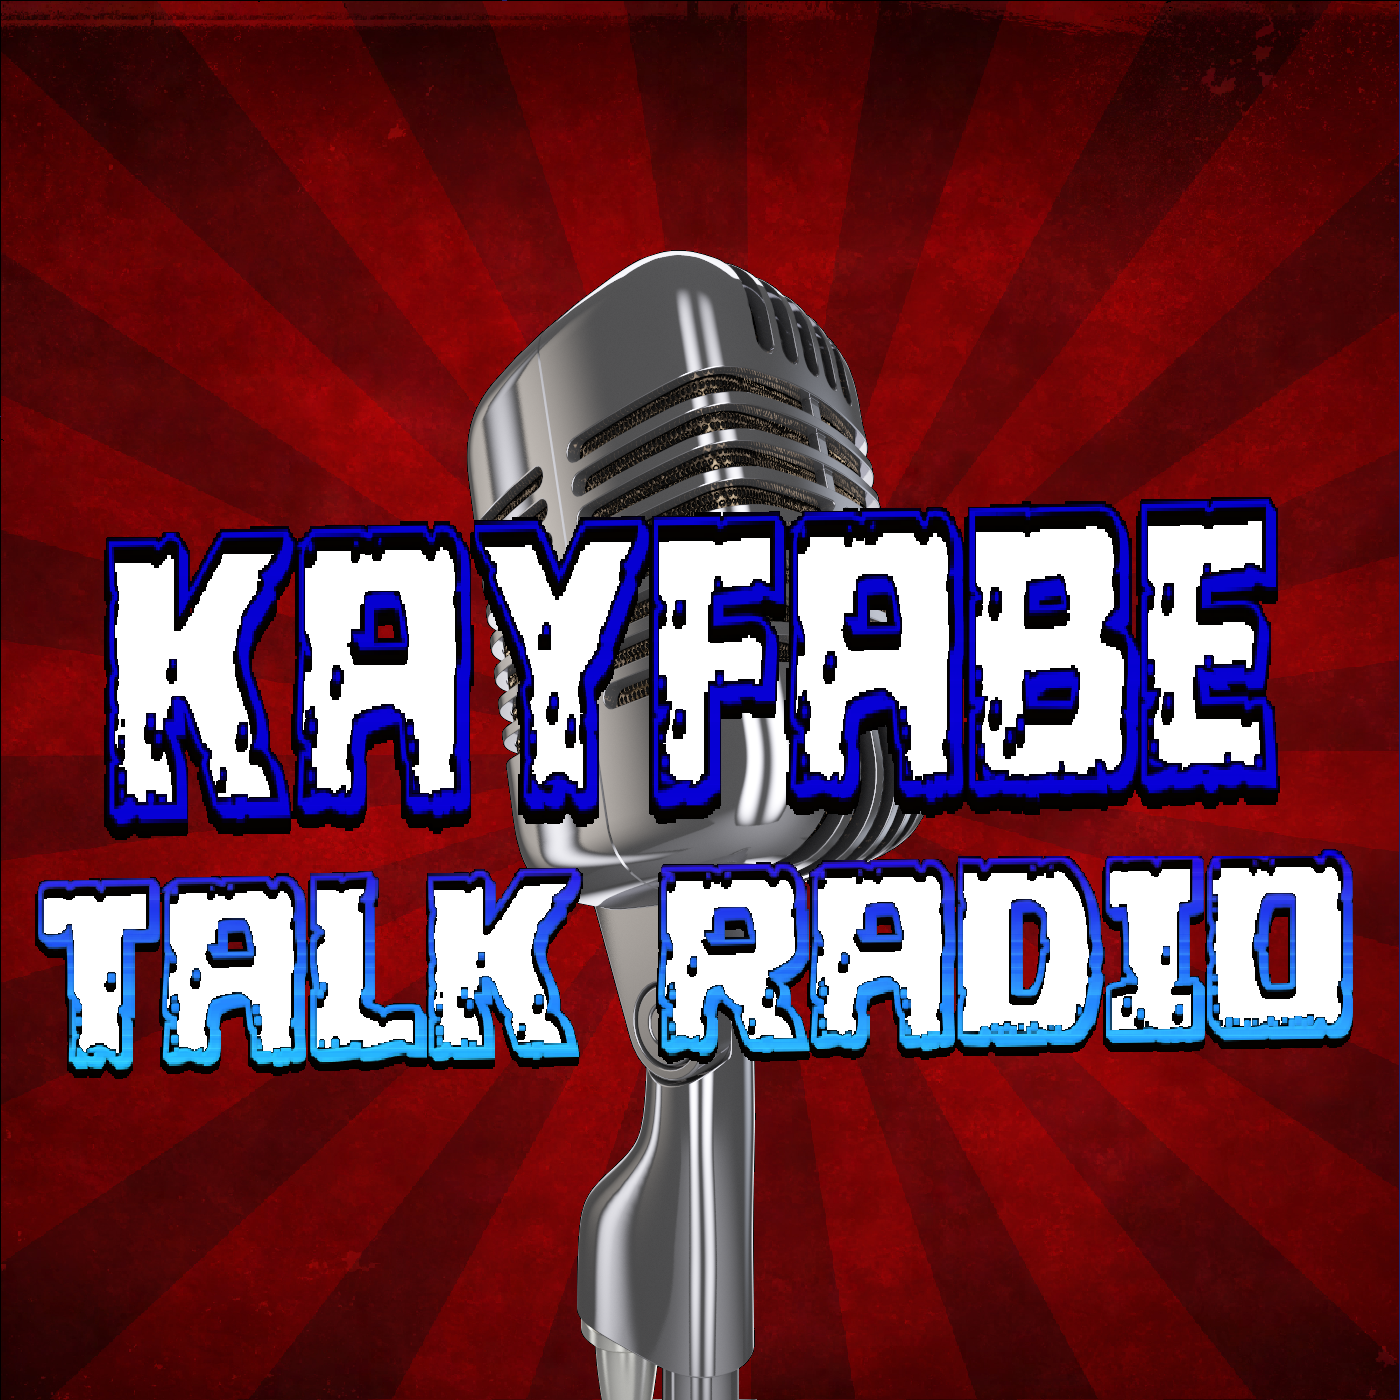 Kayfabe Talk Radio - KAYFABE TALK RADIO